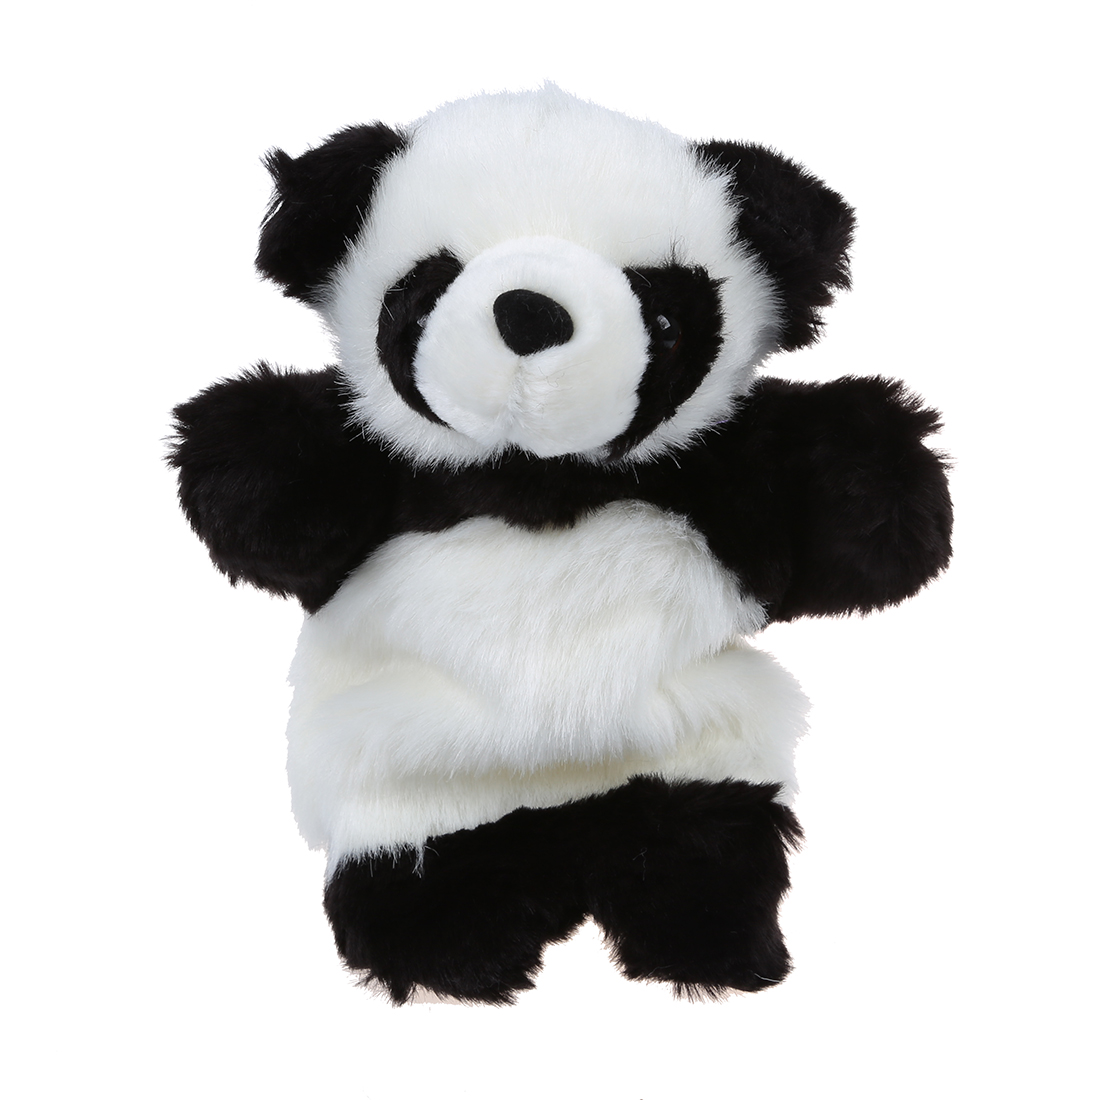 KEOL Cute Panda Wildlife Hand Glove Puppet Soft Plush Puppets Kid Childrens Toy Gift